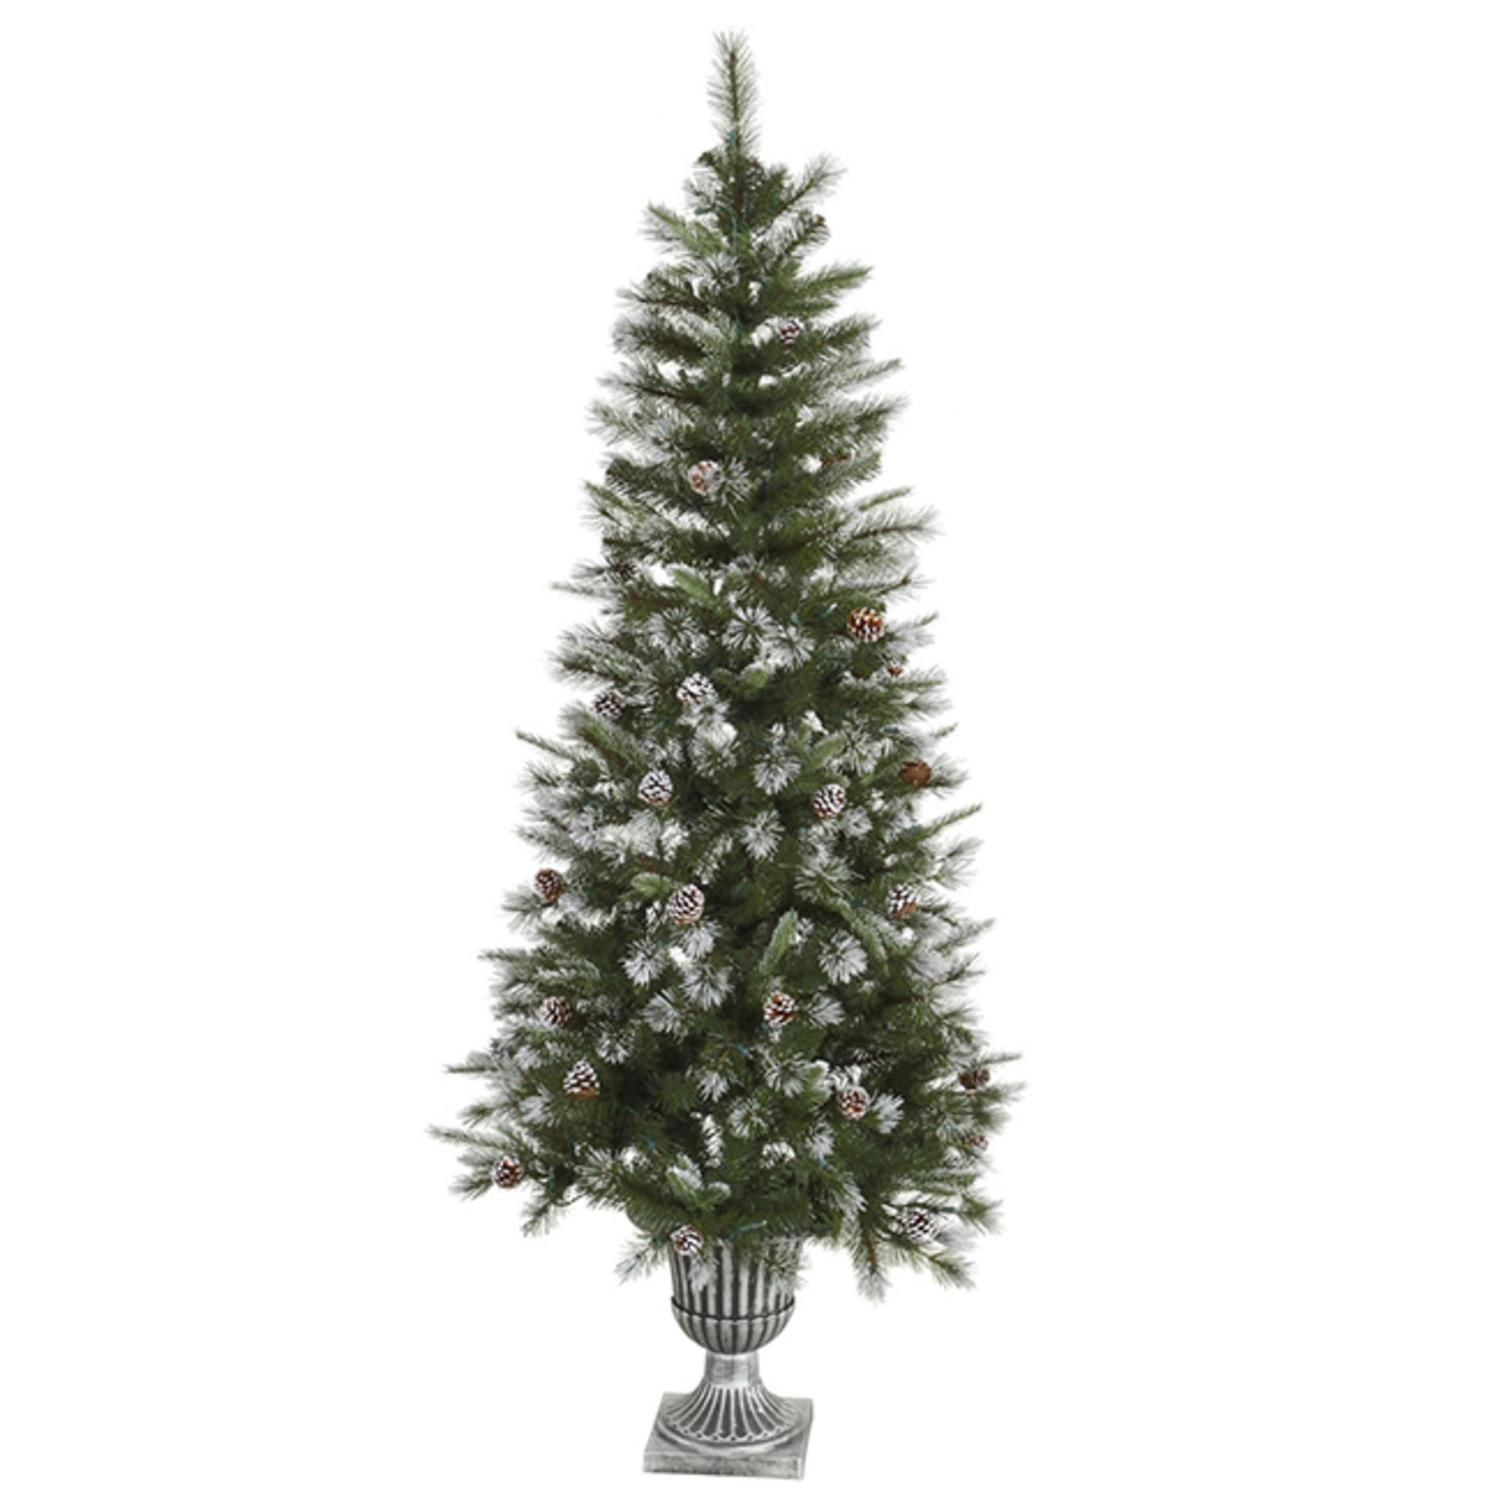 Artificial Christmas Tree With Pine Cones: 6.5' Frosted Country Pine Cone Potted Artificial Christmas